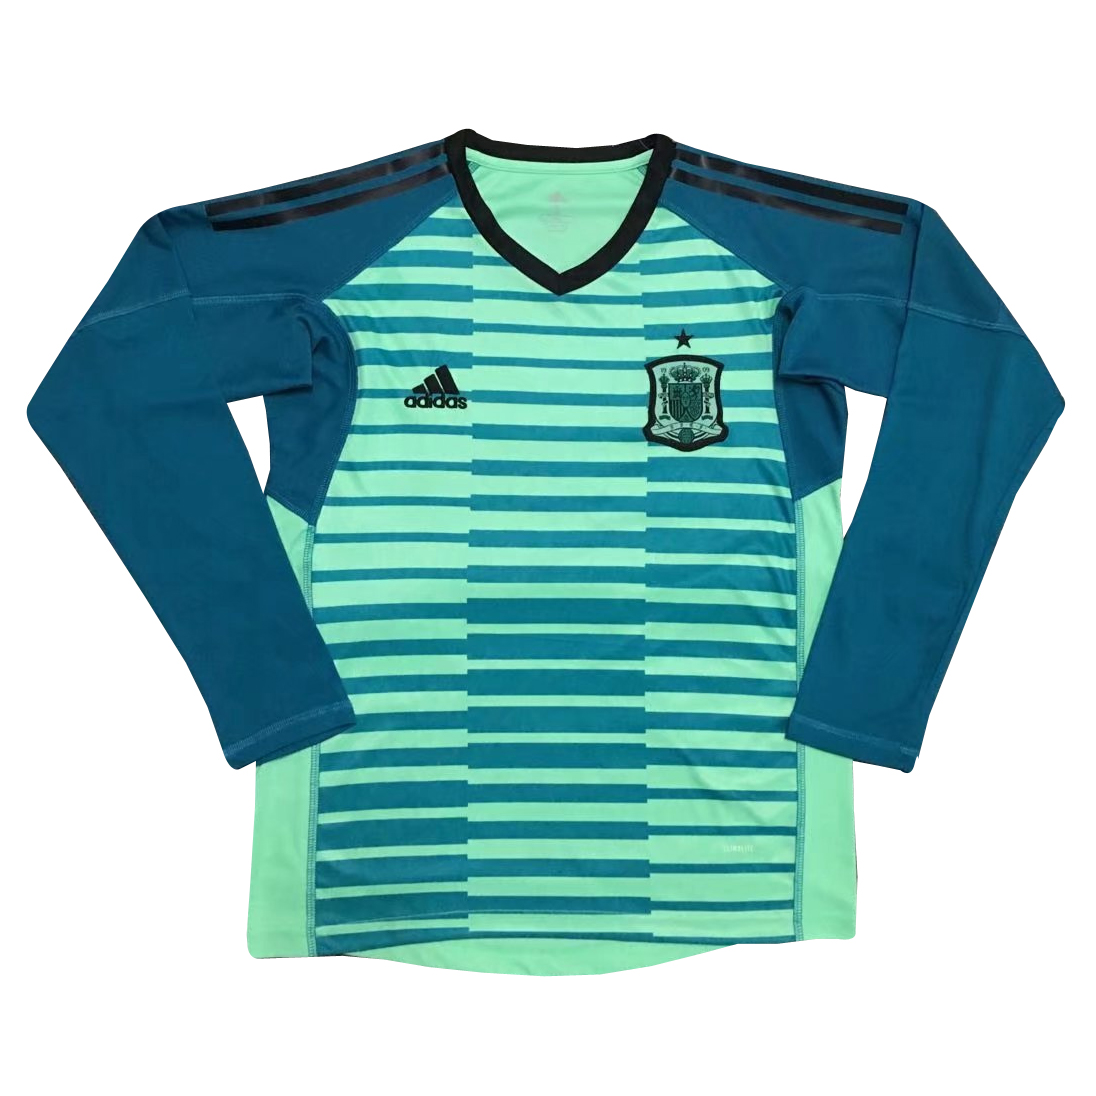 Spain Goalkeeper Soccer Jerseys 2018 World Cup Green LS Football Shirts